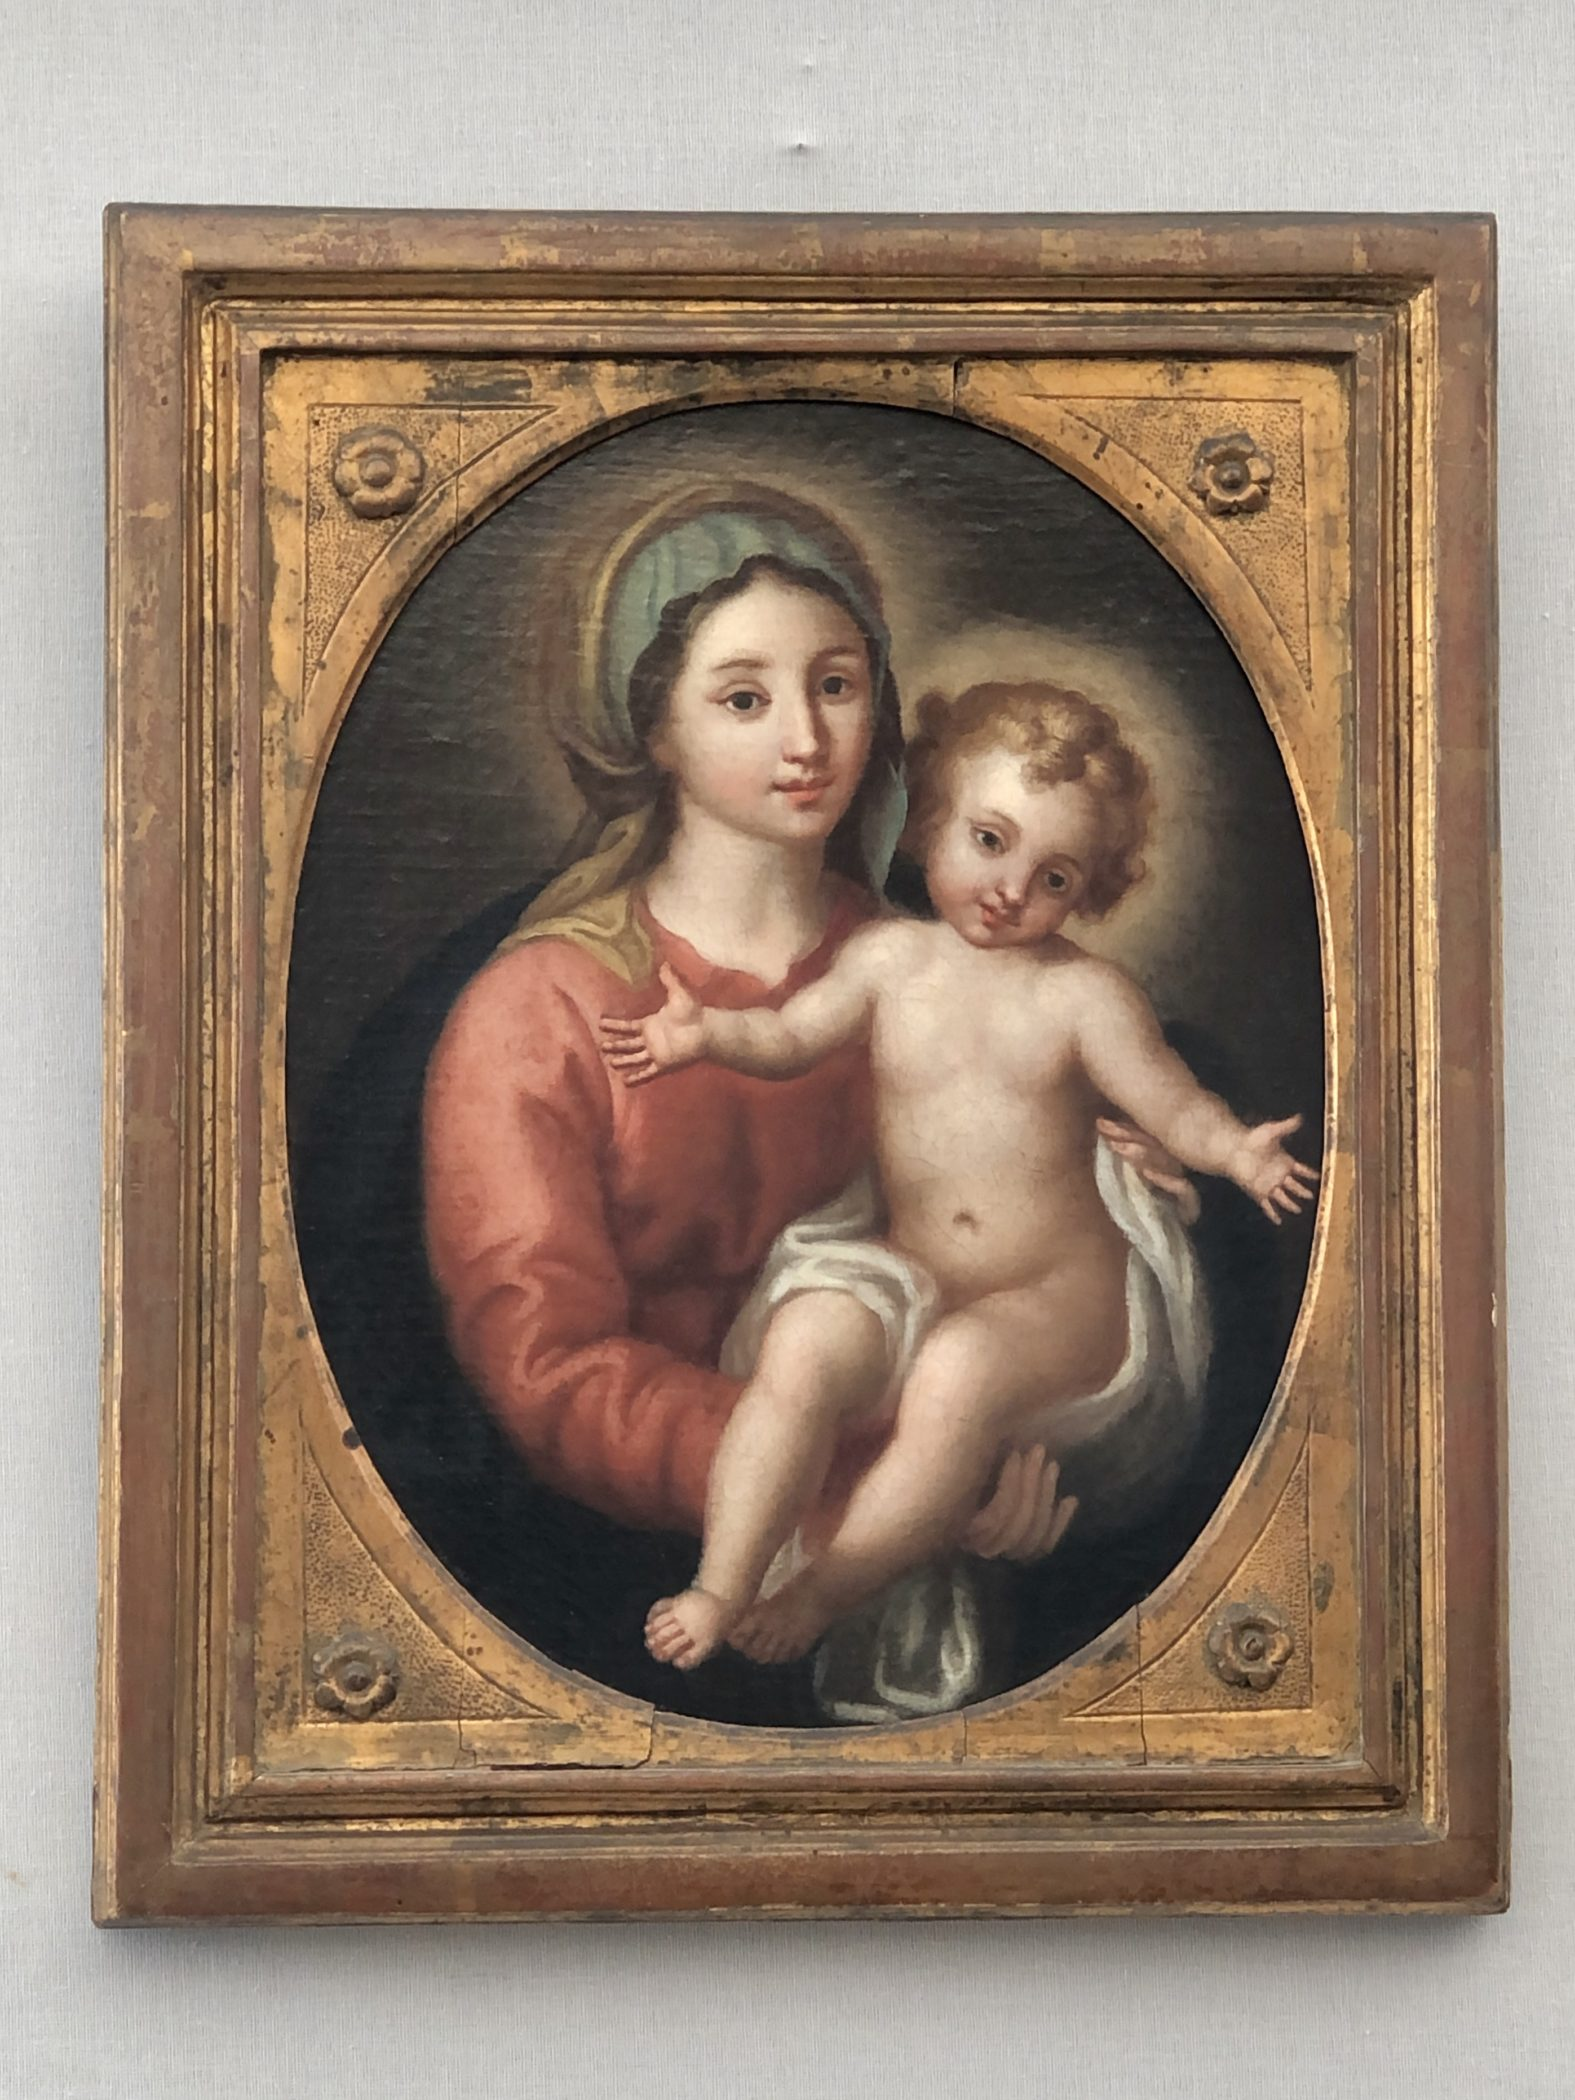 Madonna and Child, Oil on Canvas. Italy, 18th century